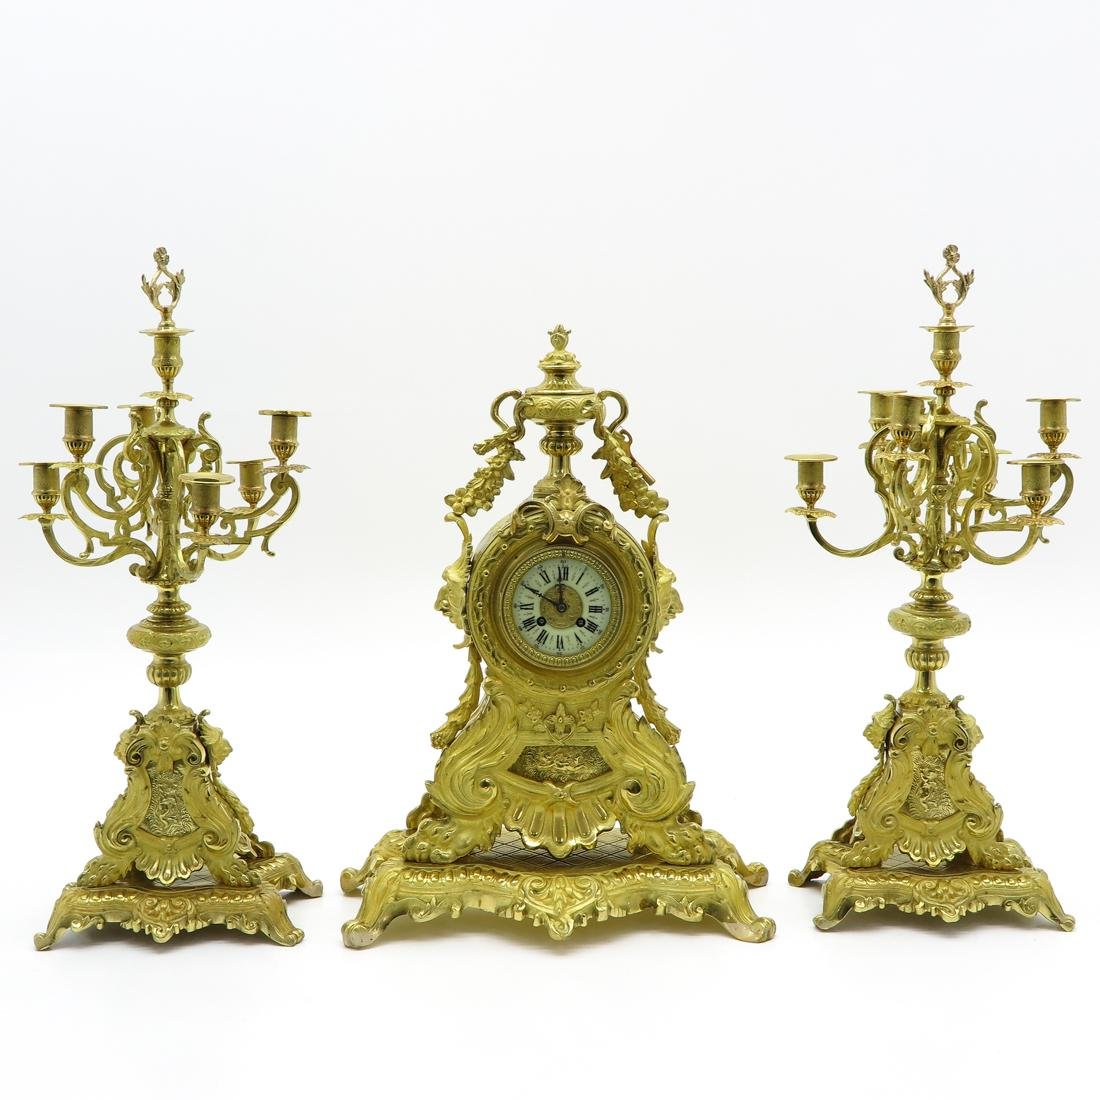 19th Century 3 Piece Clock Set